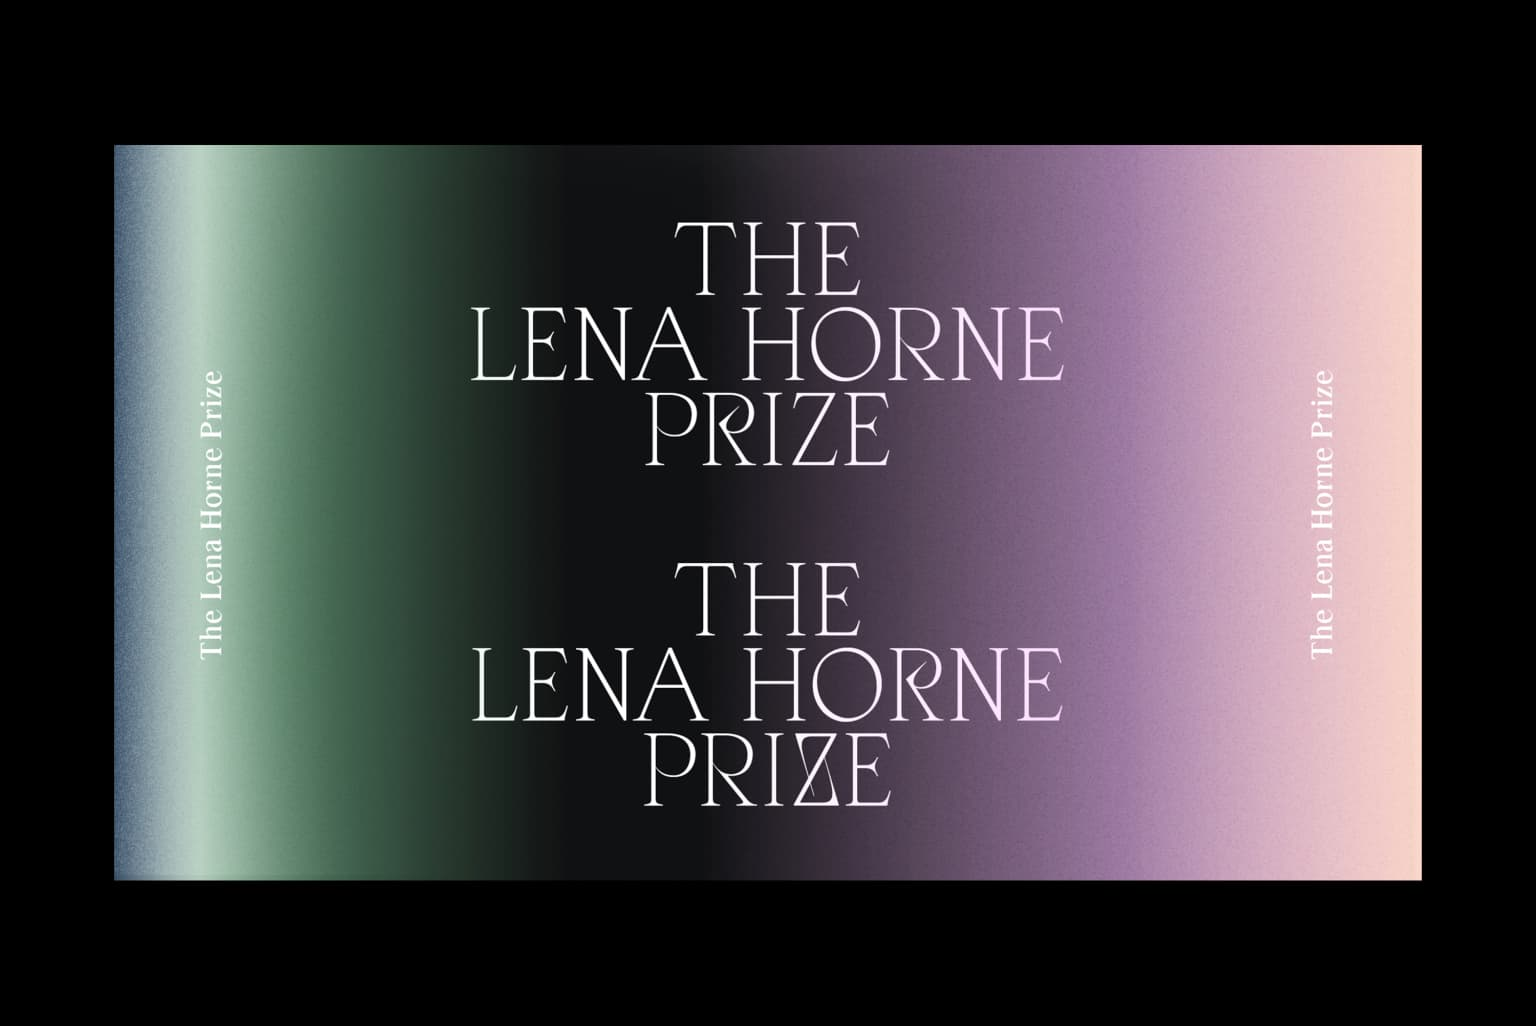 The Lena Horne Prize